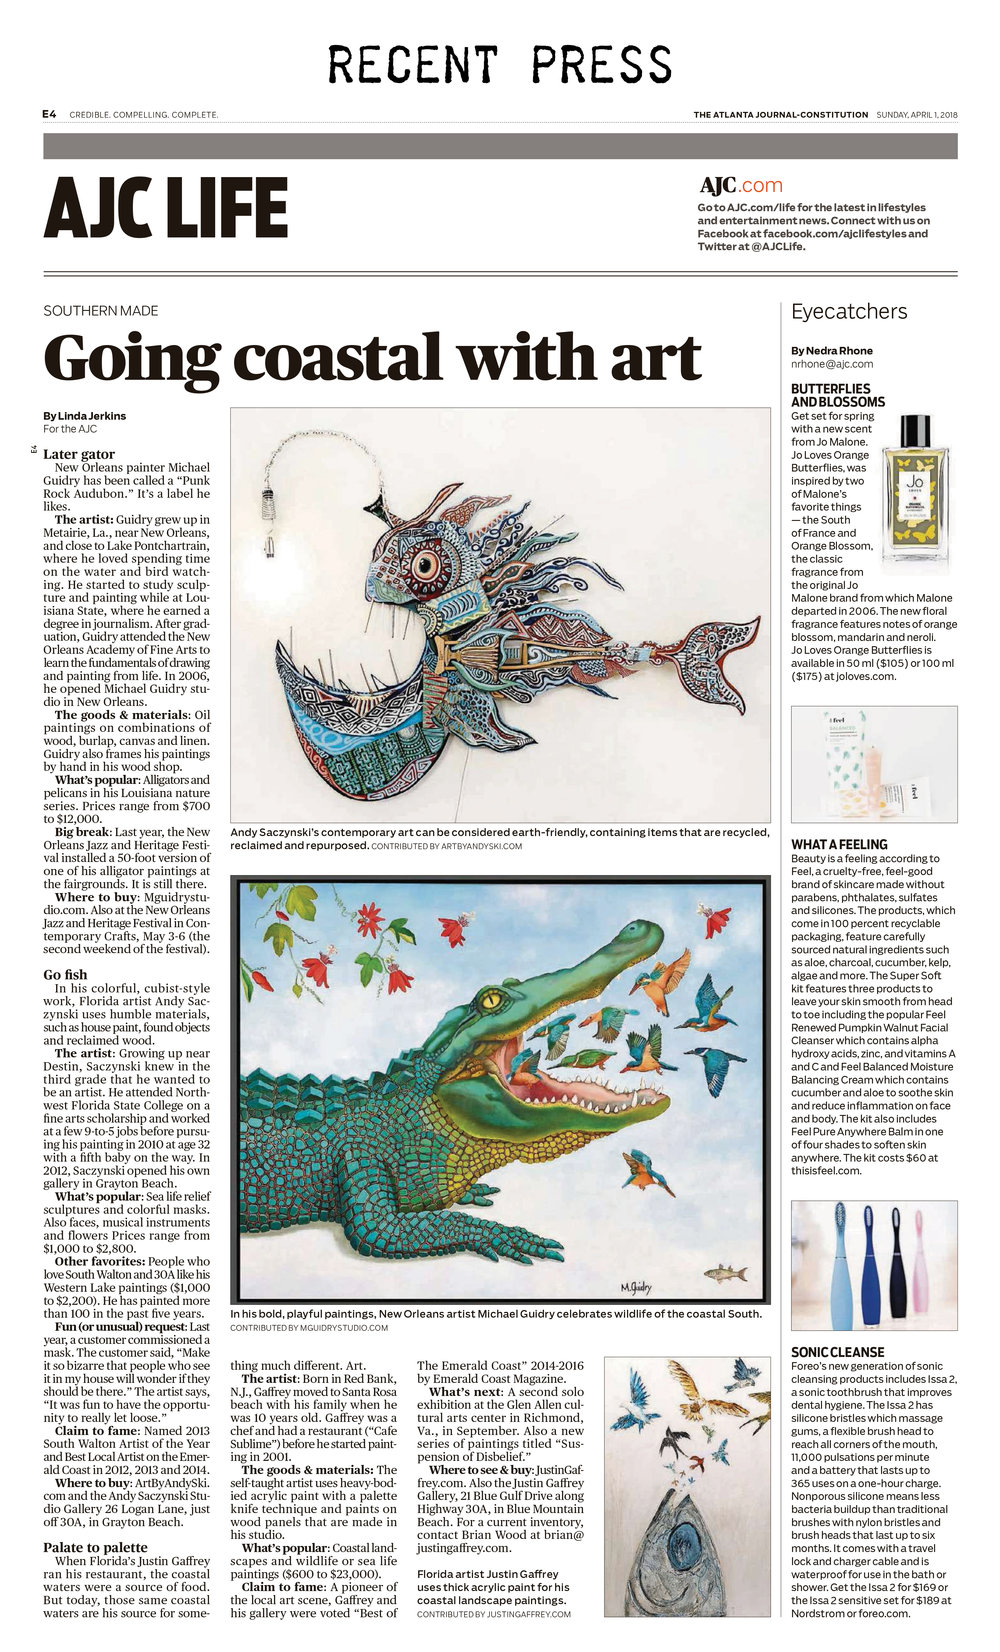 atlanta-journal-constitution-recent-press--m-michael-guidry-neworleans-louisiana-artist-studio-painter-alligator-interview-article.jpg